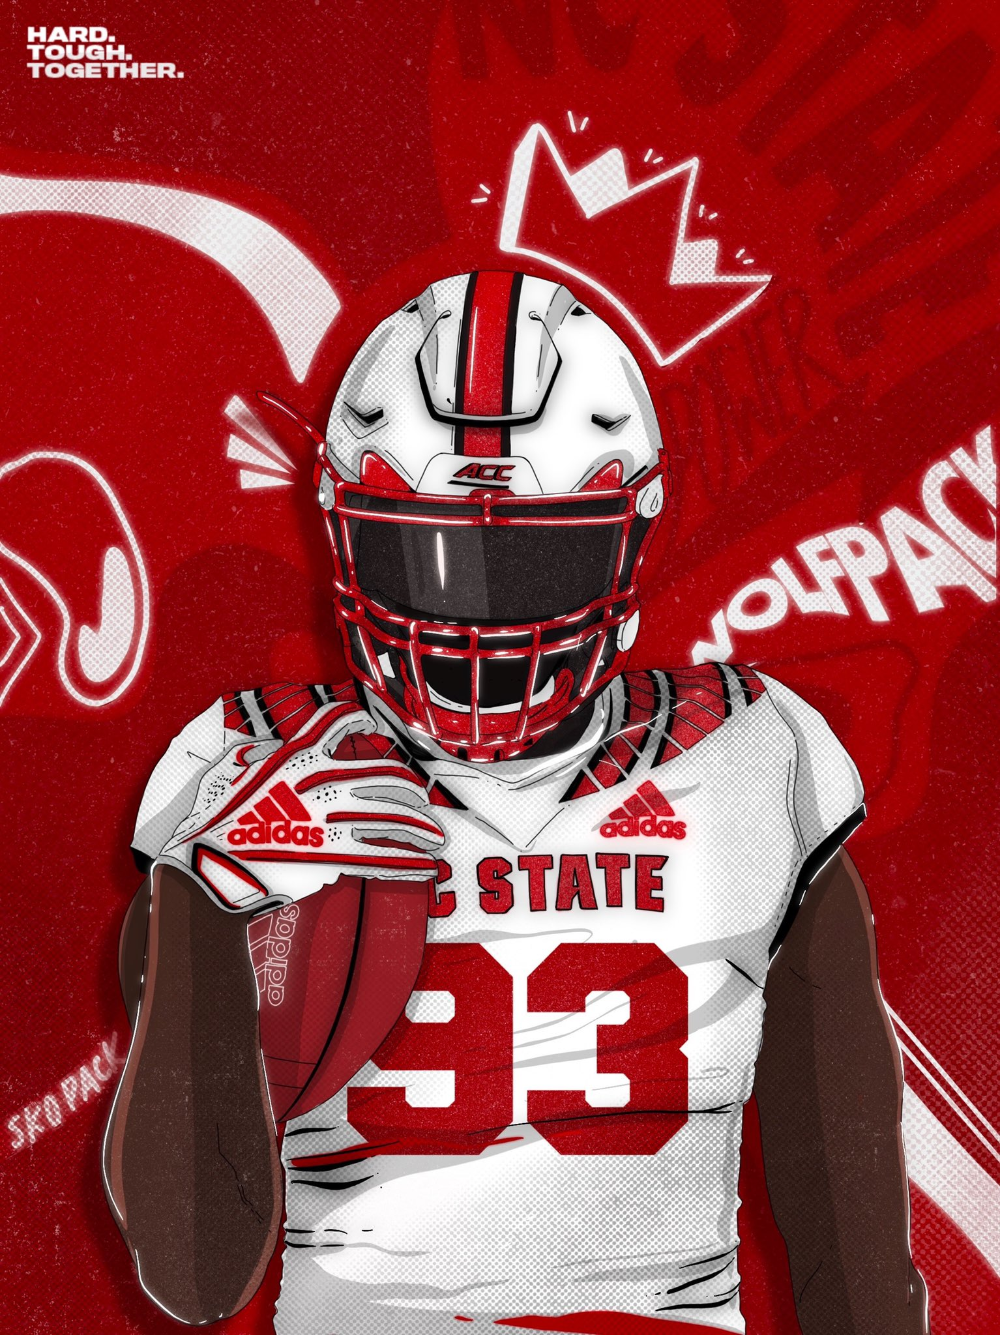 1 Home Twitter In 2020 Sports Design Tough Football Helmets